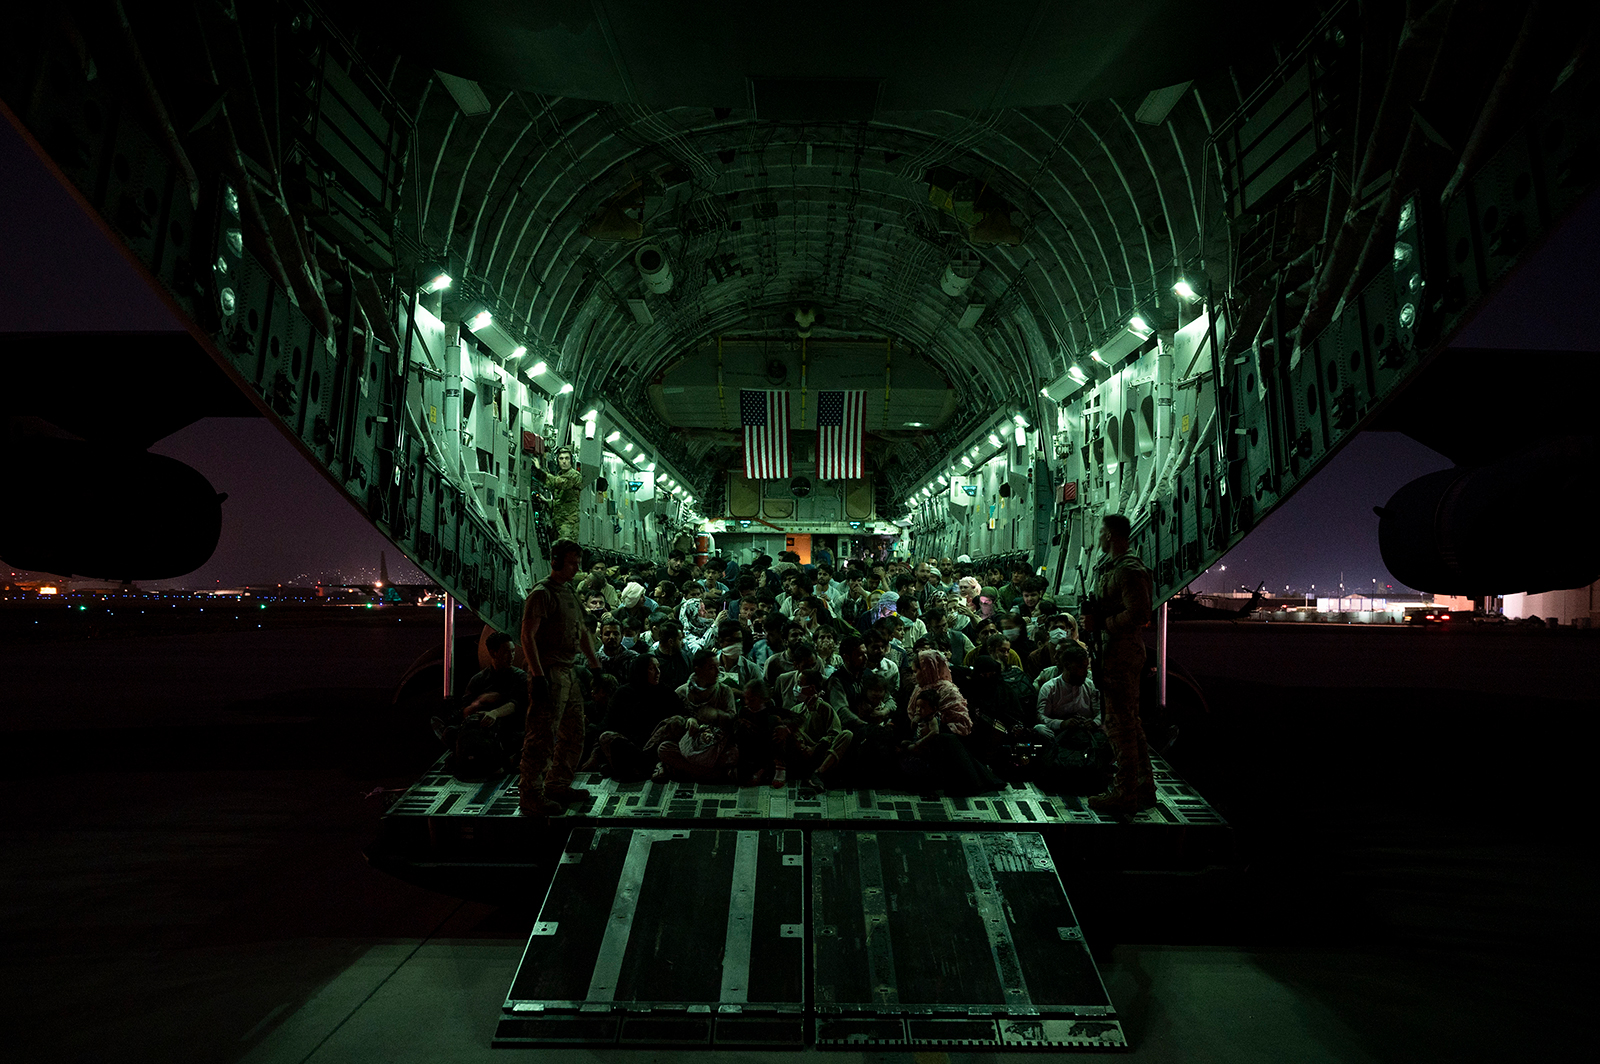 In this handout provided by the U.S. Air Force, an air crew assigned to the 816th Expeditionary Airlift Squadron assists evacuees aboard a C-17 Globemaster III aircraft in support of the Afghanistan evacuation at Hamid Karzai International Airport on August 21 in Kabul, Afghanistan.